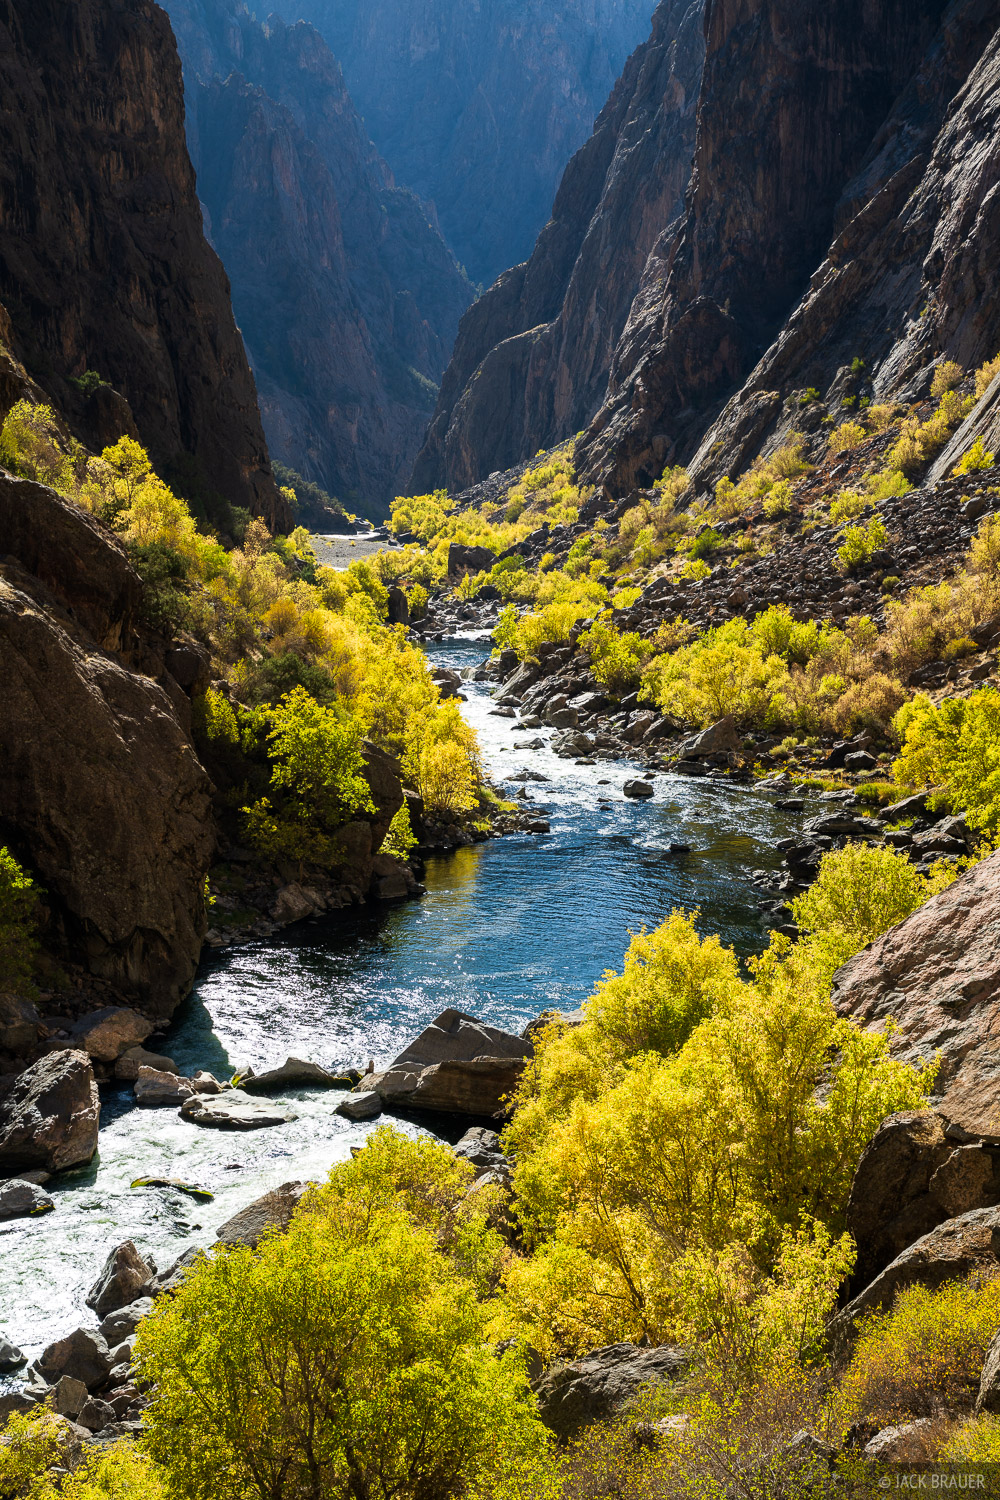 Autumn colors along the Gunnison River as it carves through the Black Canyon over 2,000 feet below the surrounding land, creating...